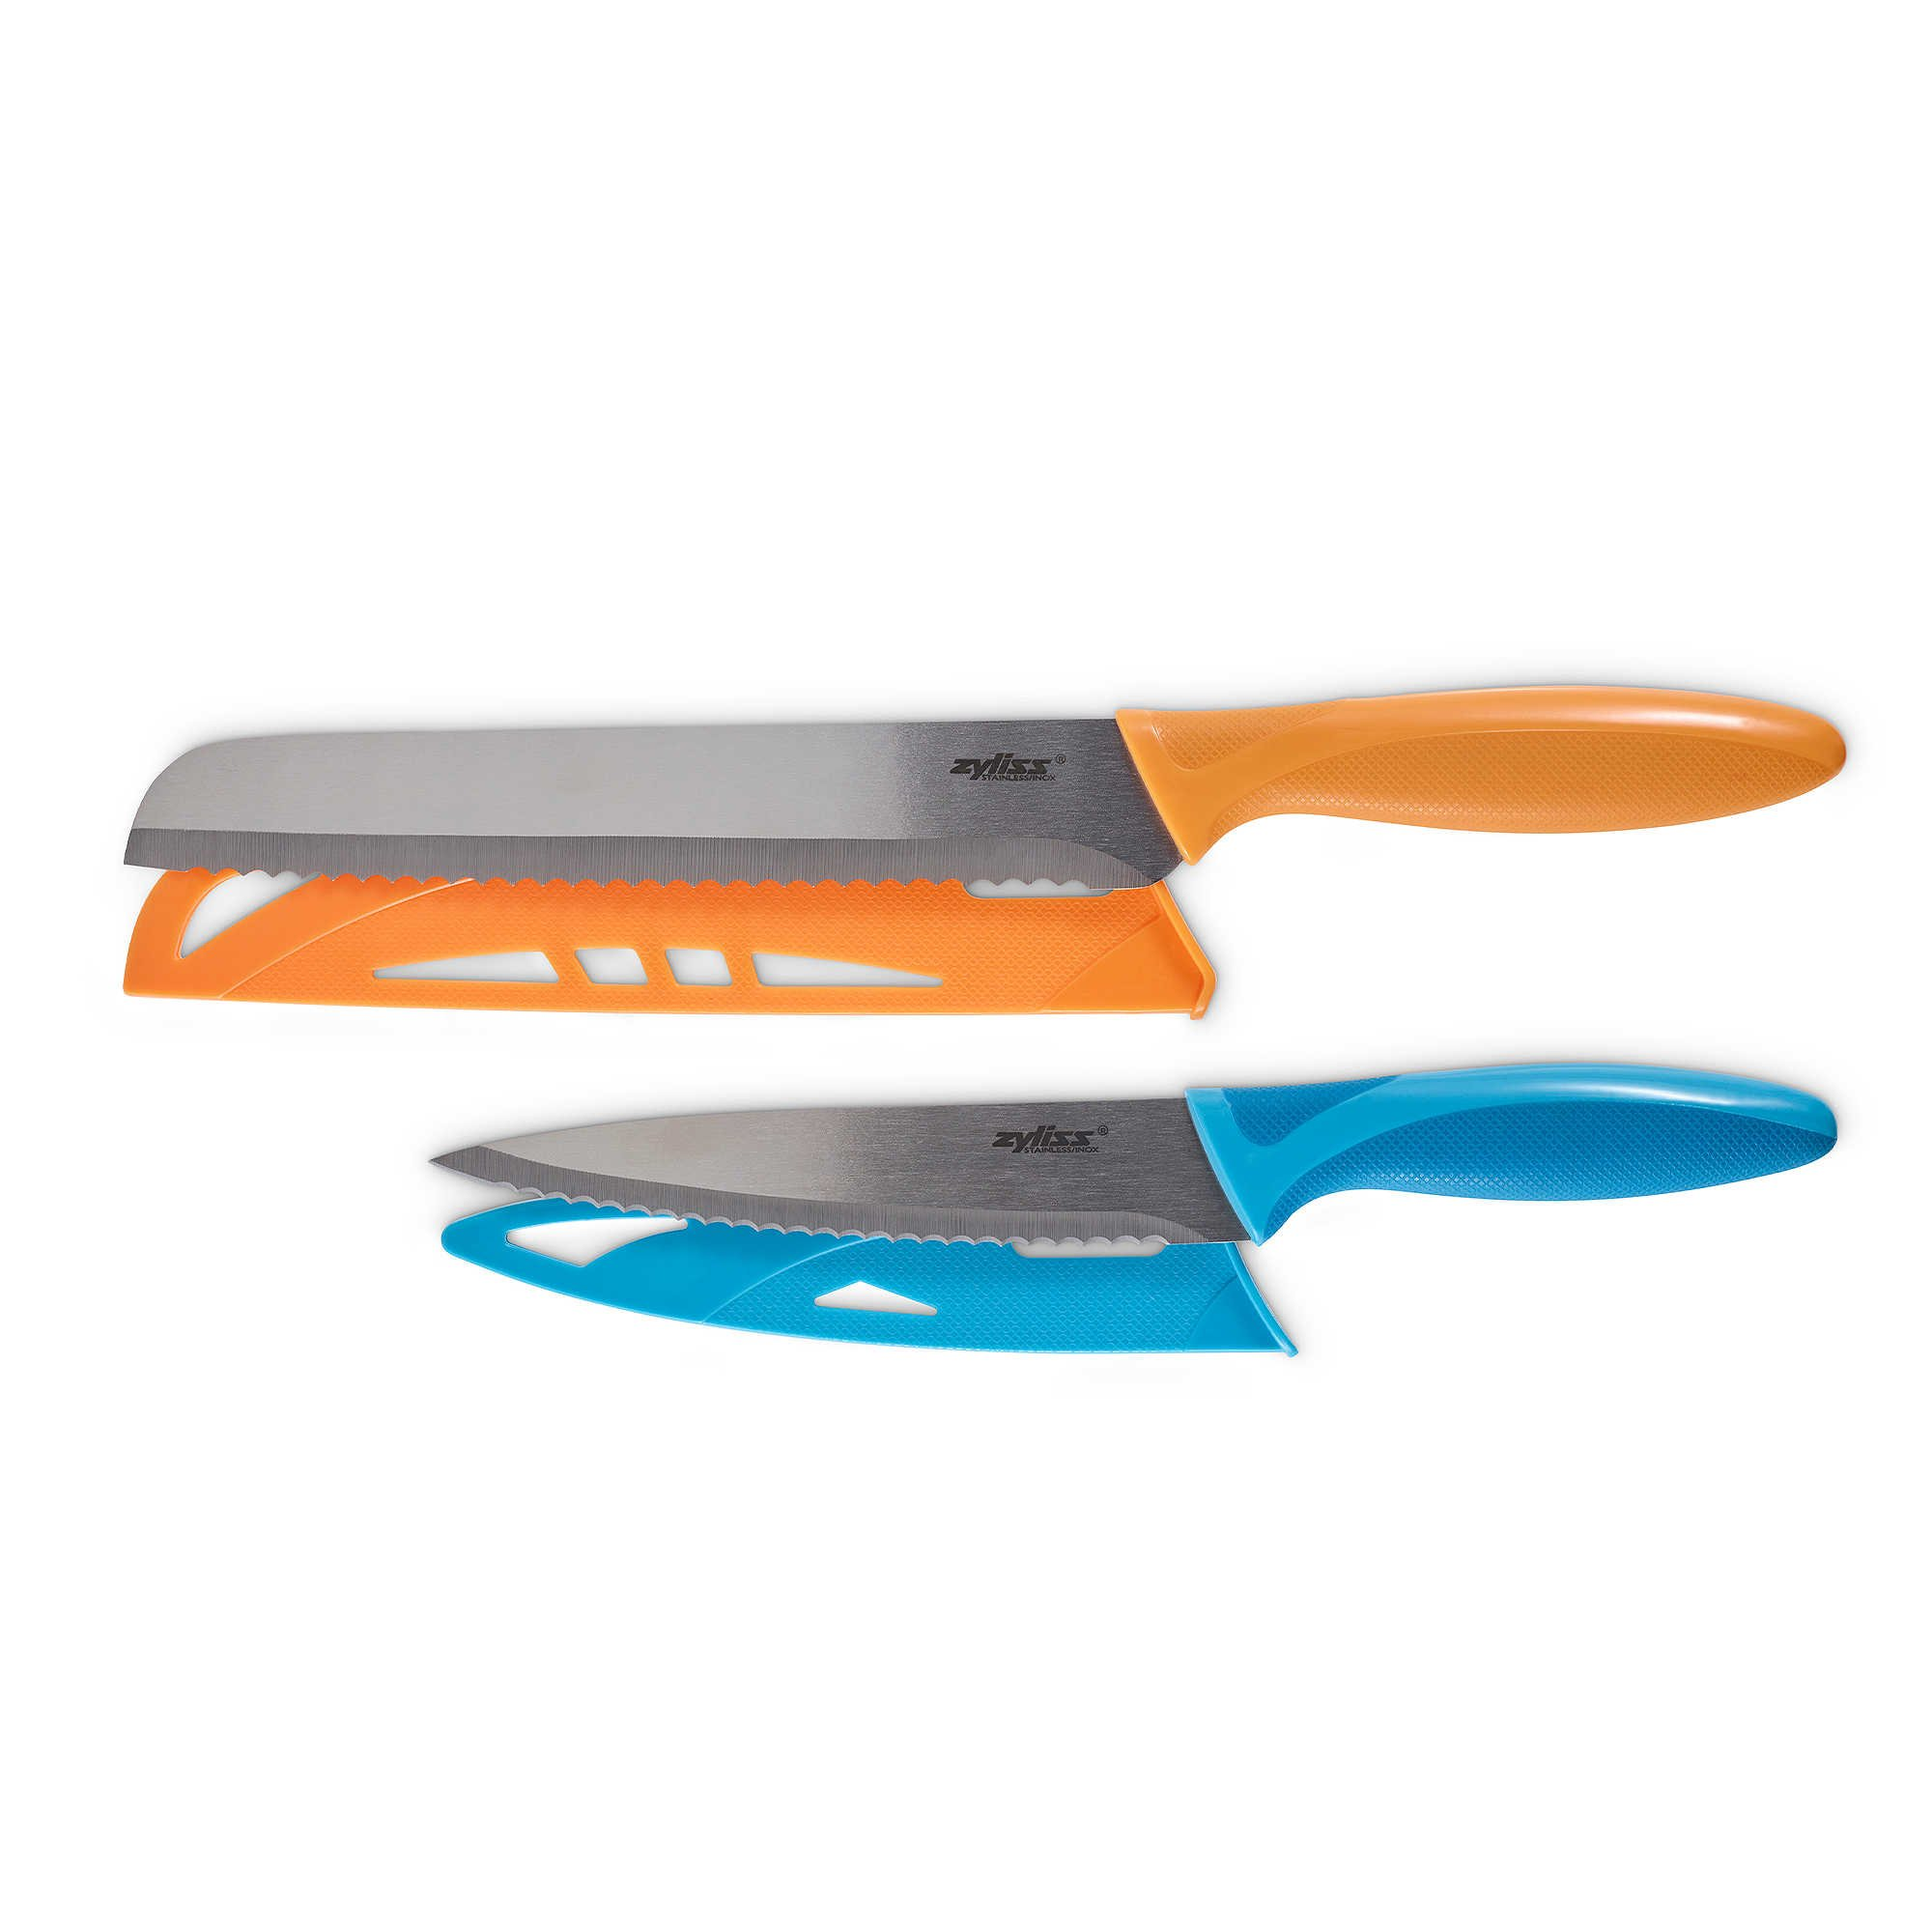 Zyliss 2-Piece Stainless Steel Serrated Knife Set, Featuring 8'' Bread Knife and Serrated Utility Knife with Blade Cover